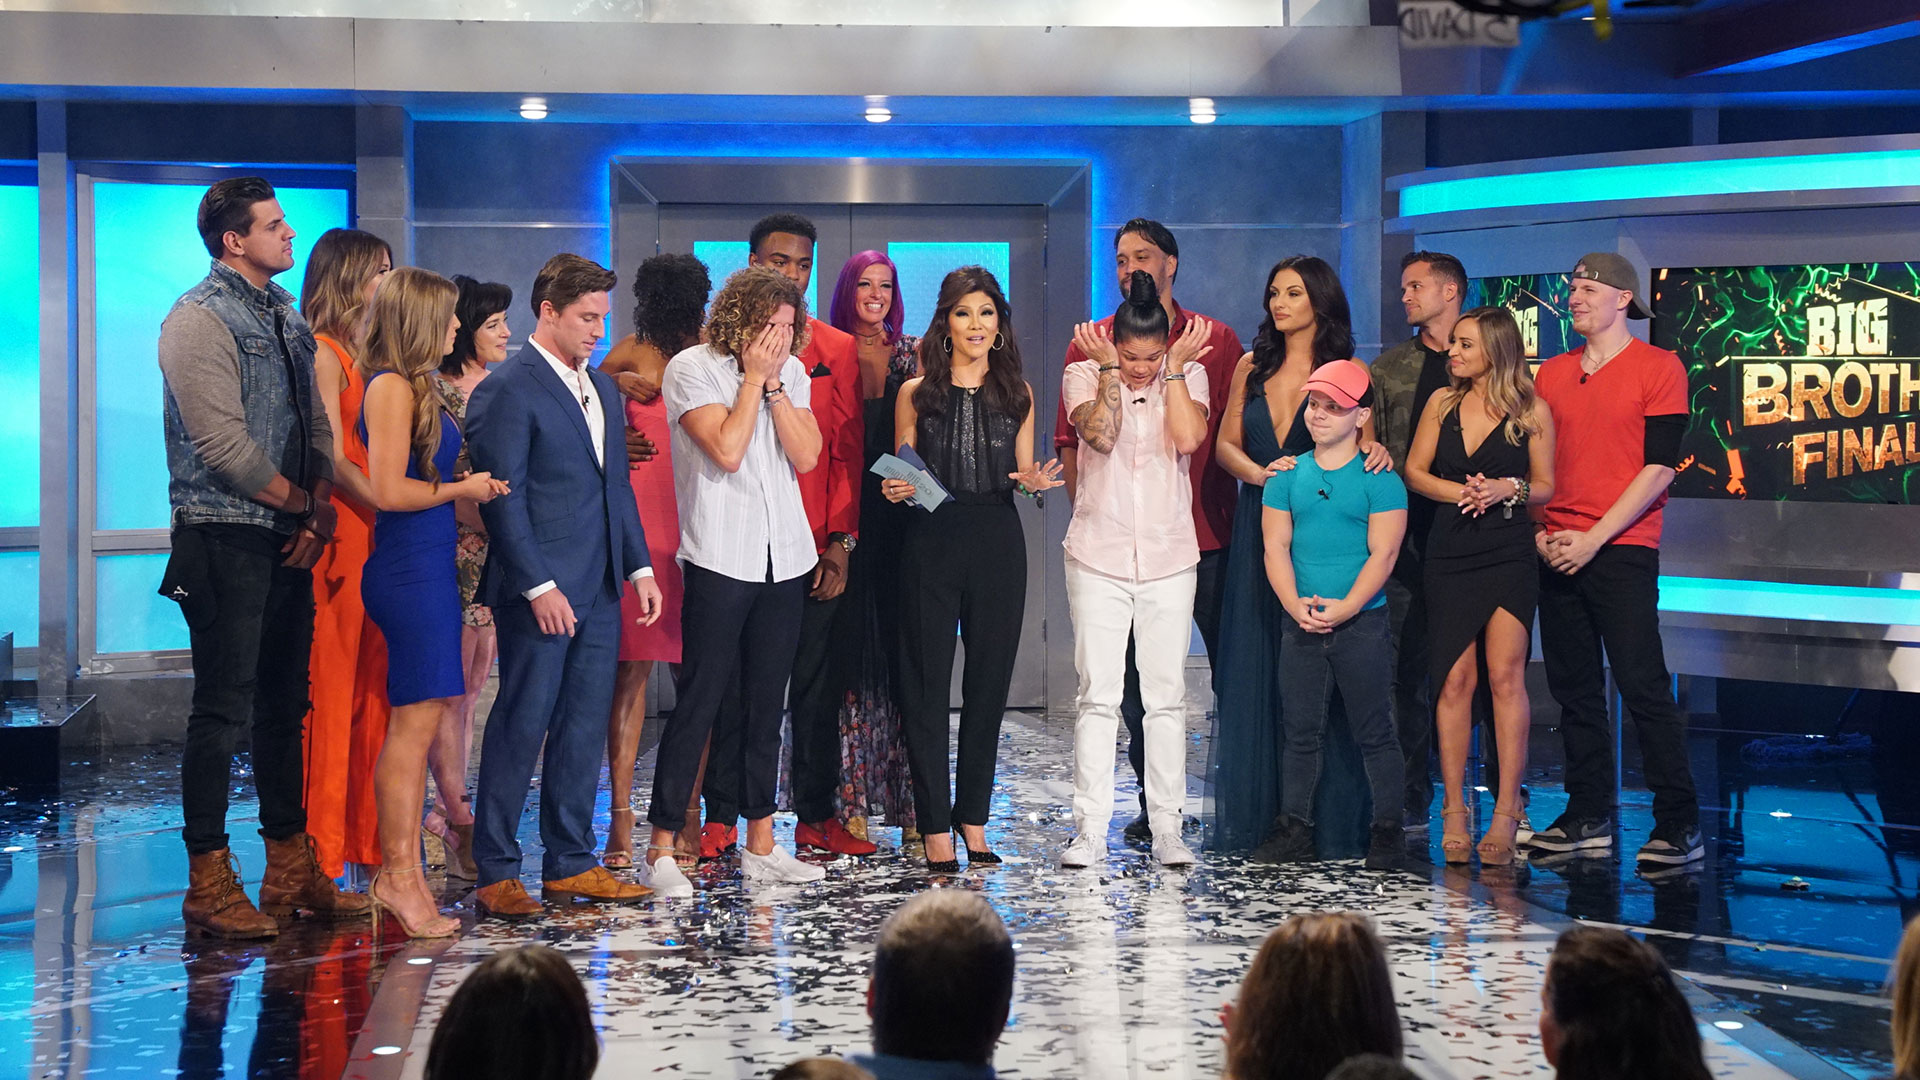 Big Brother Season 20 Recap: The Glory And The Glitches Of